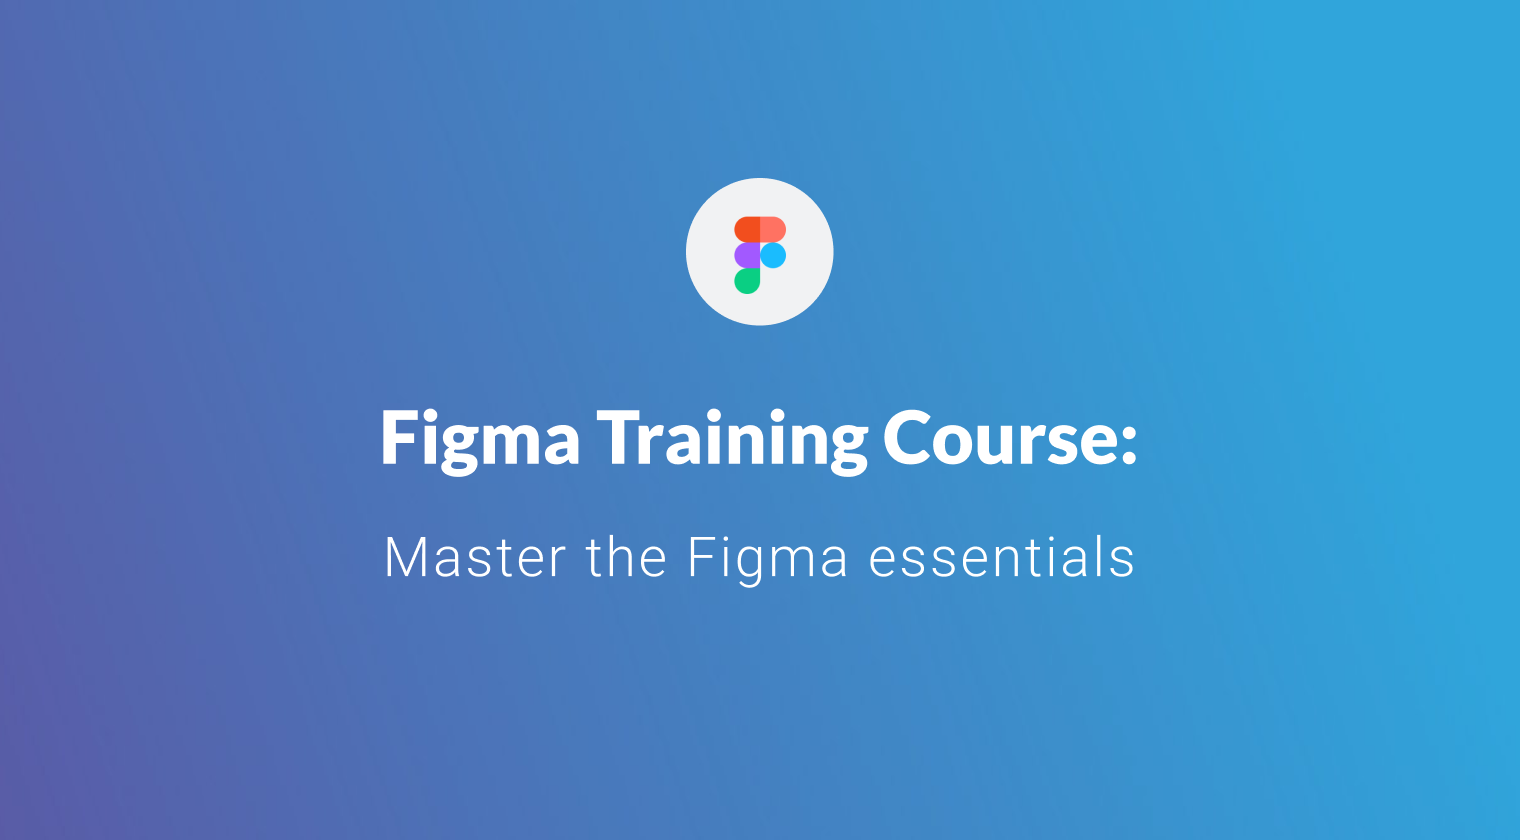 Figma Training Course